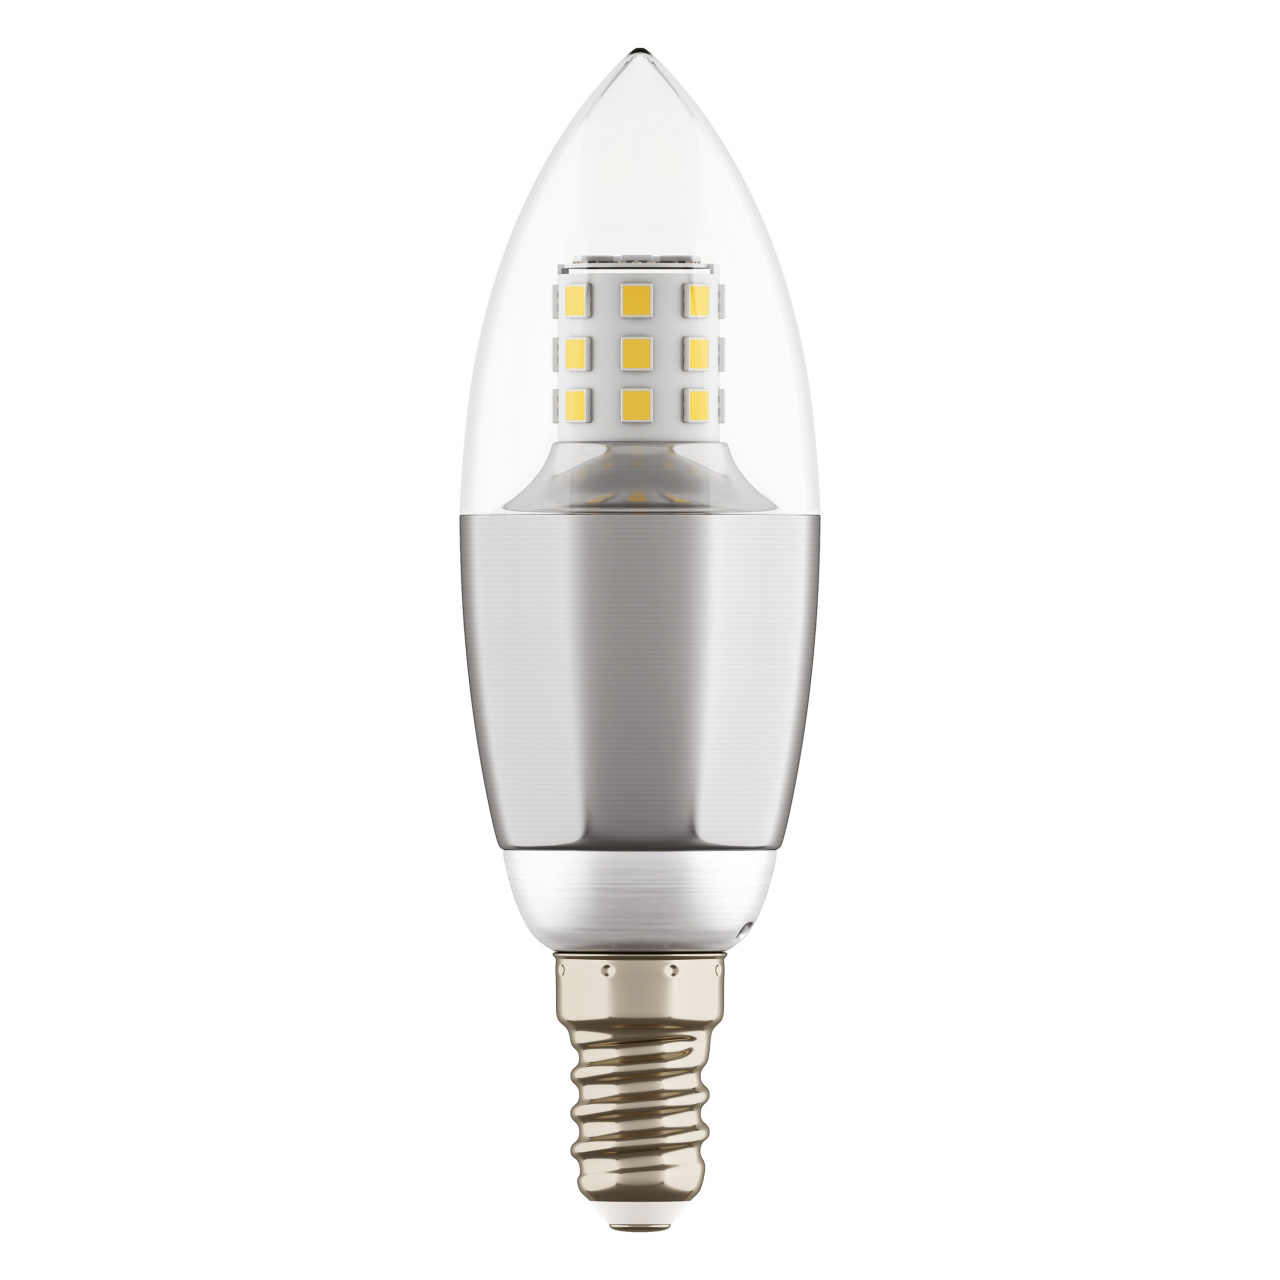 Лампа LED 220V C35 E14 7W=70W 460LM 60G CL/CH 4000K 20000H Lightstar 940544